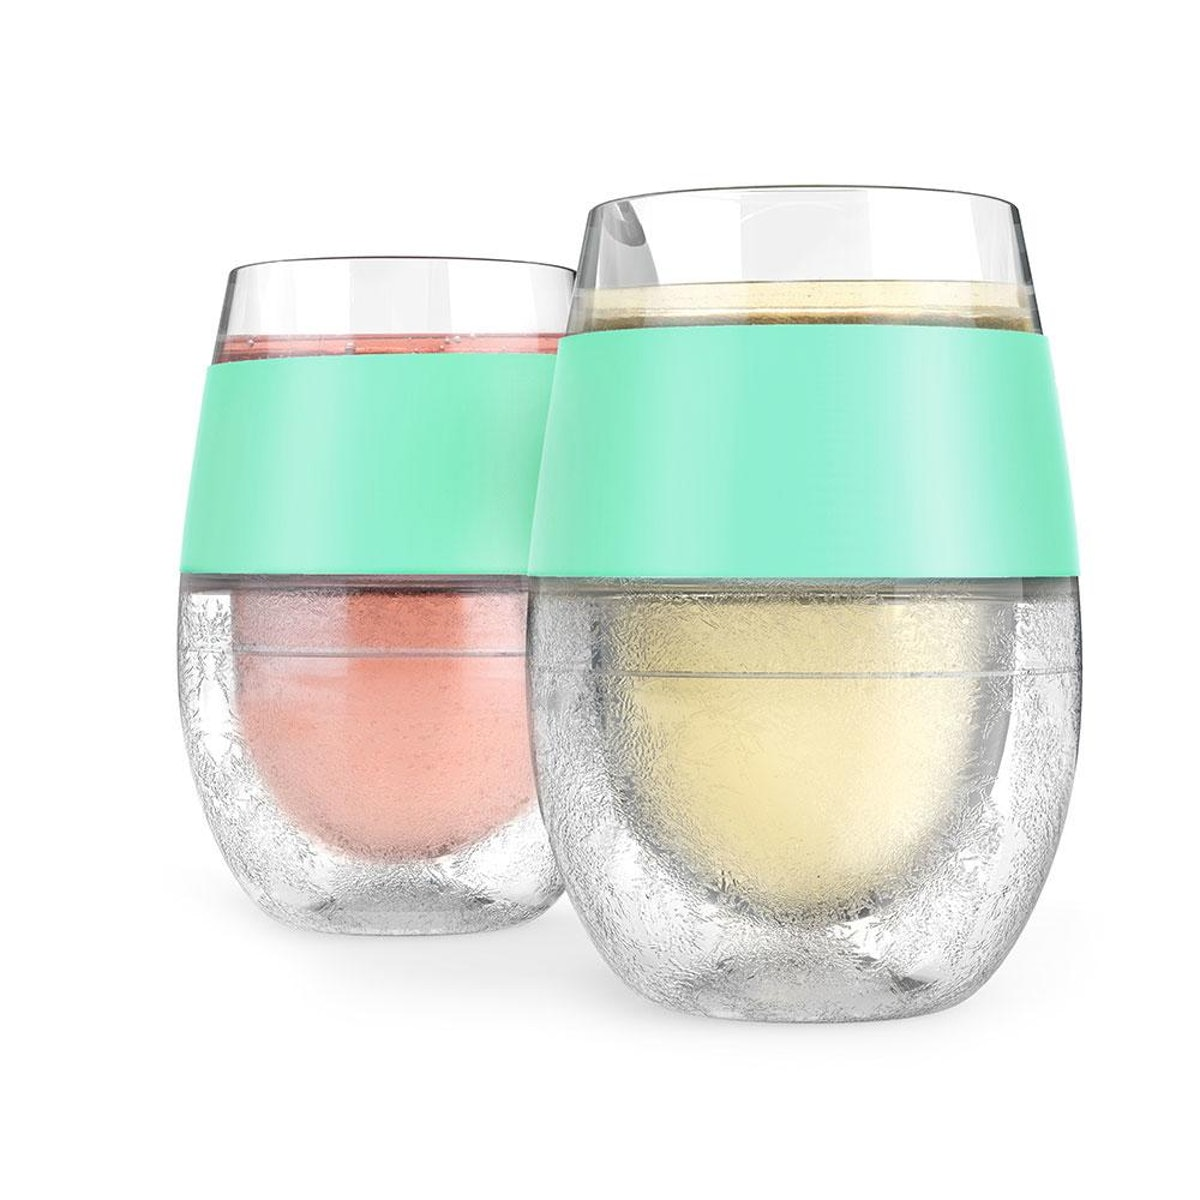 Host Wine Cooling Cups (Set of 2)